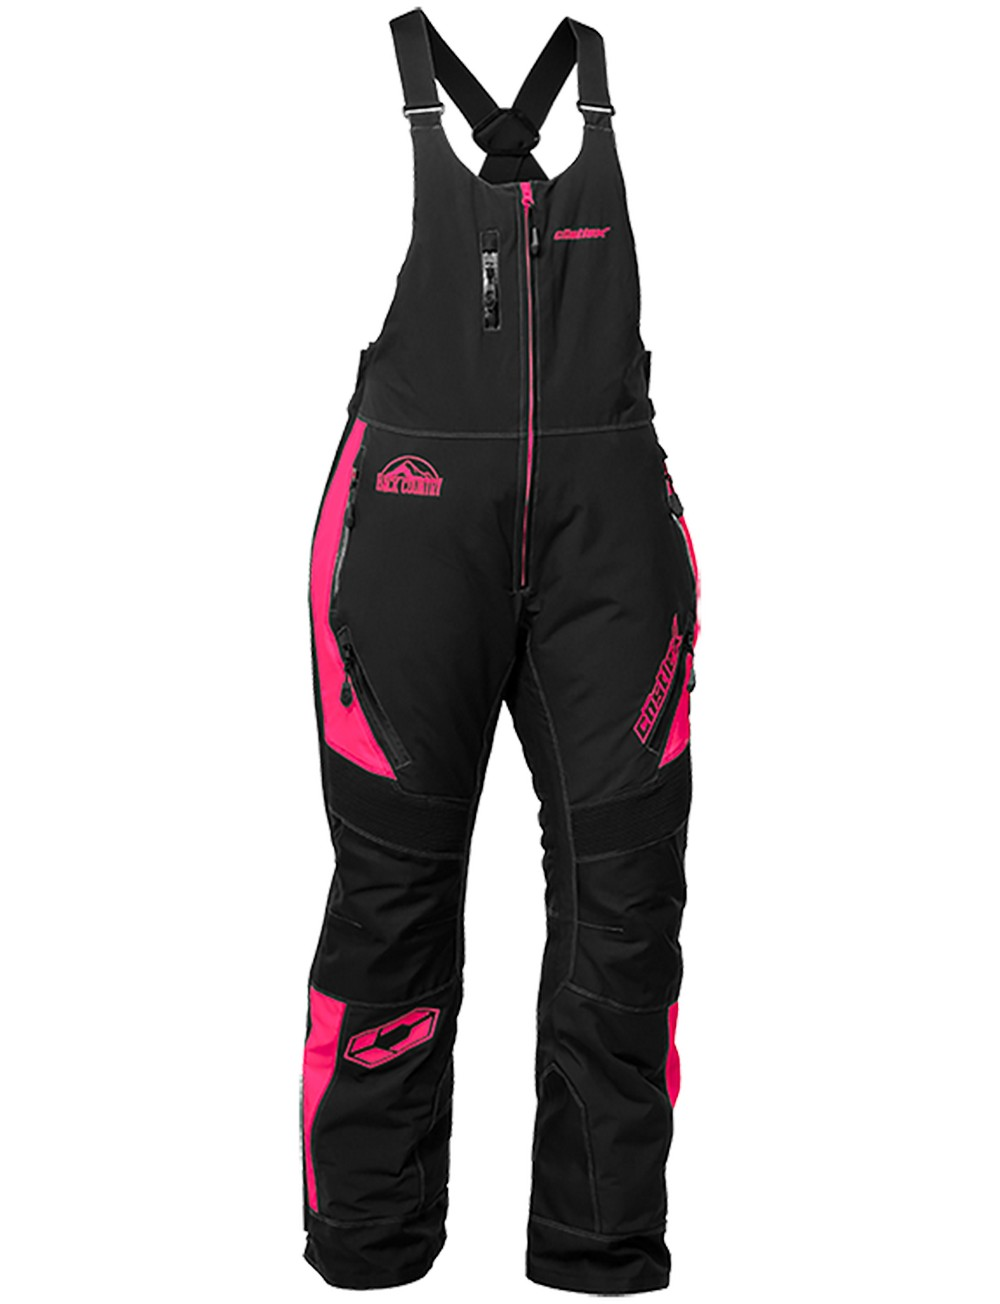 Castle X Racewear Tundra Womens Snow Bibs Hot Pink by